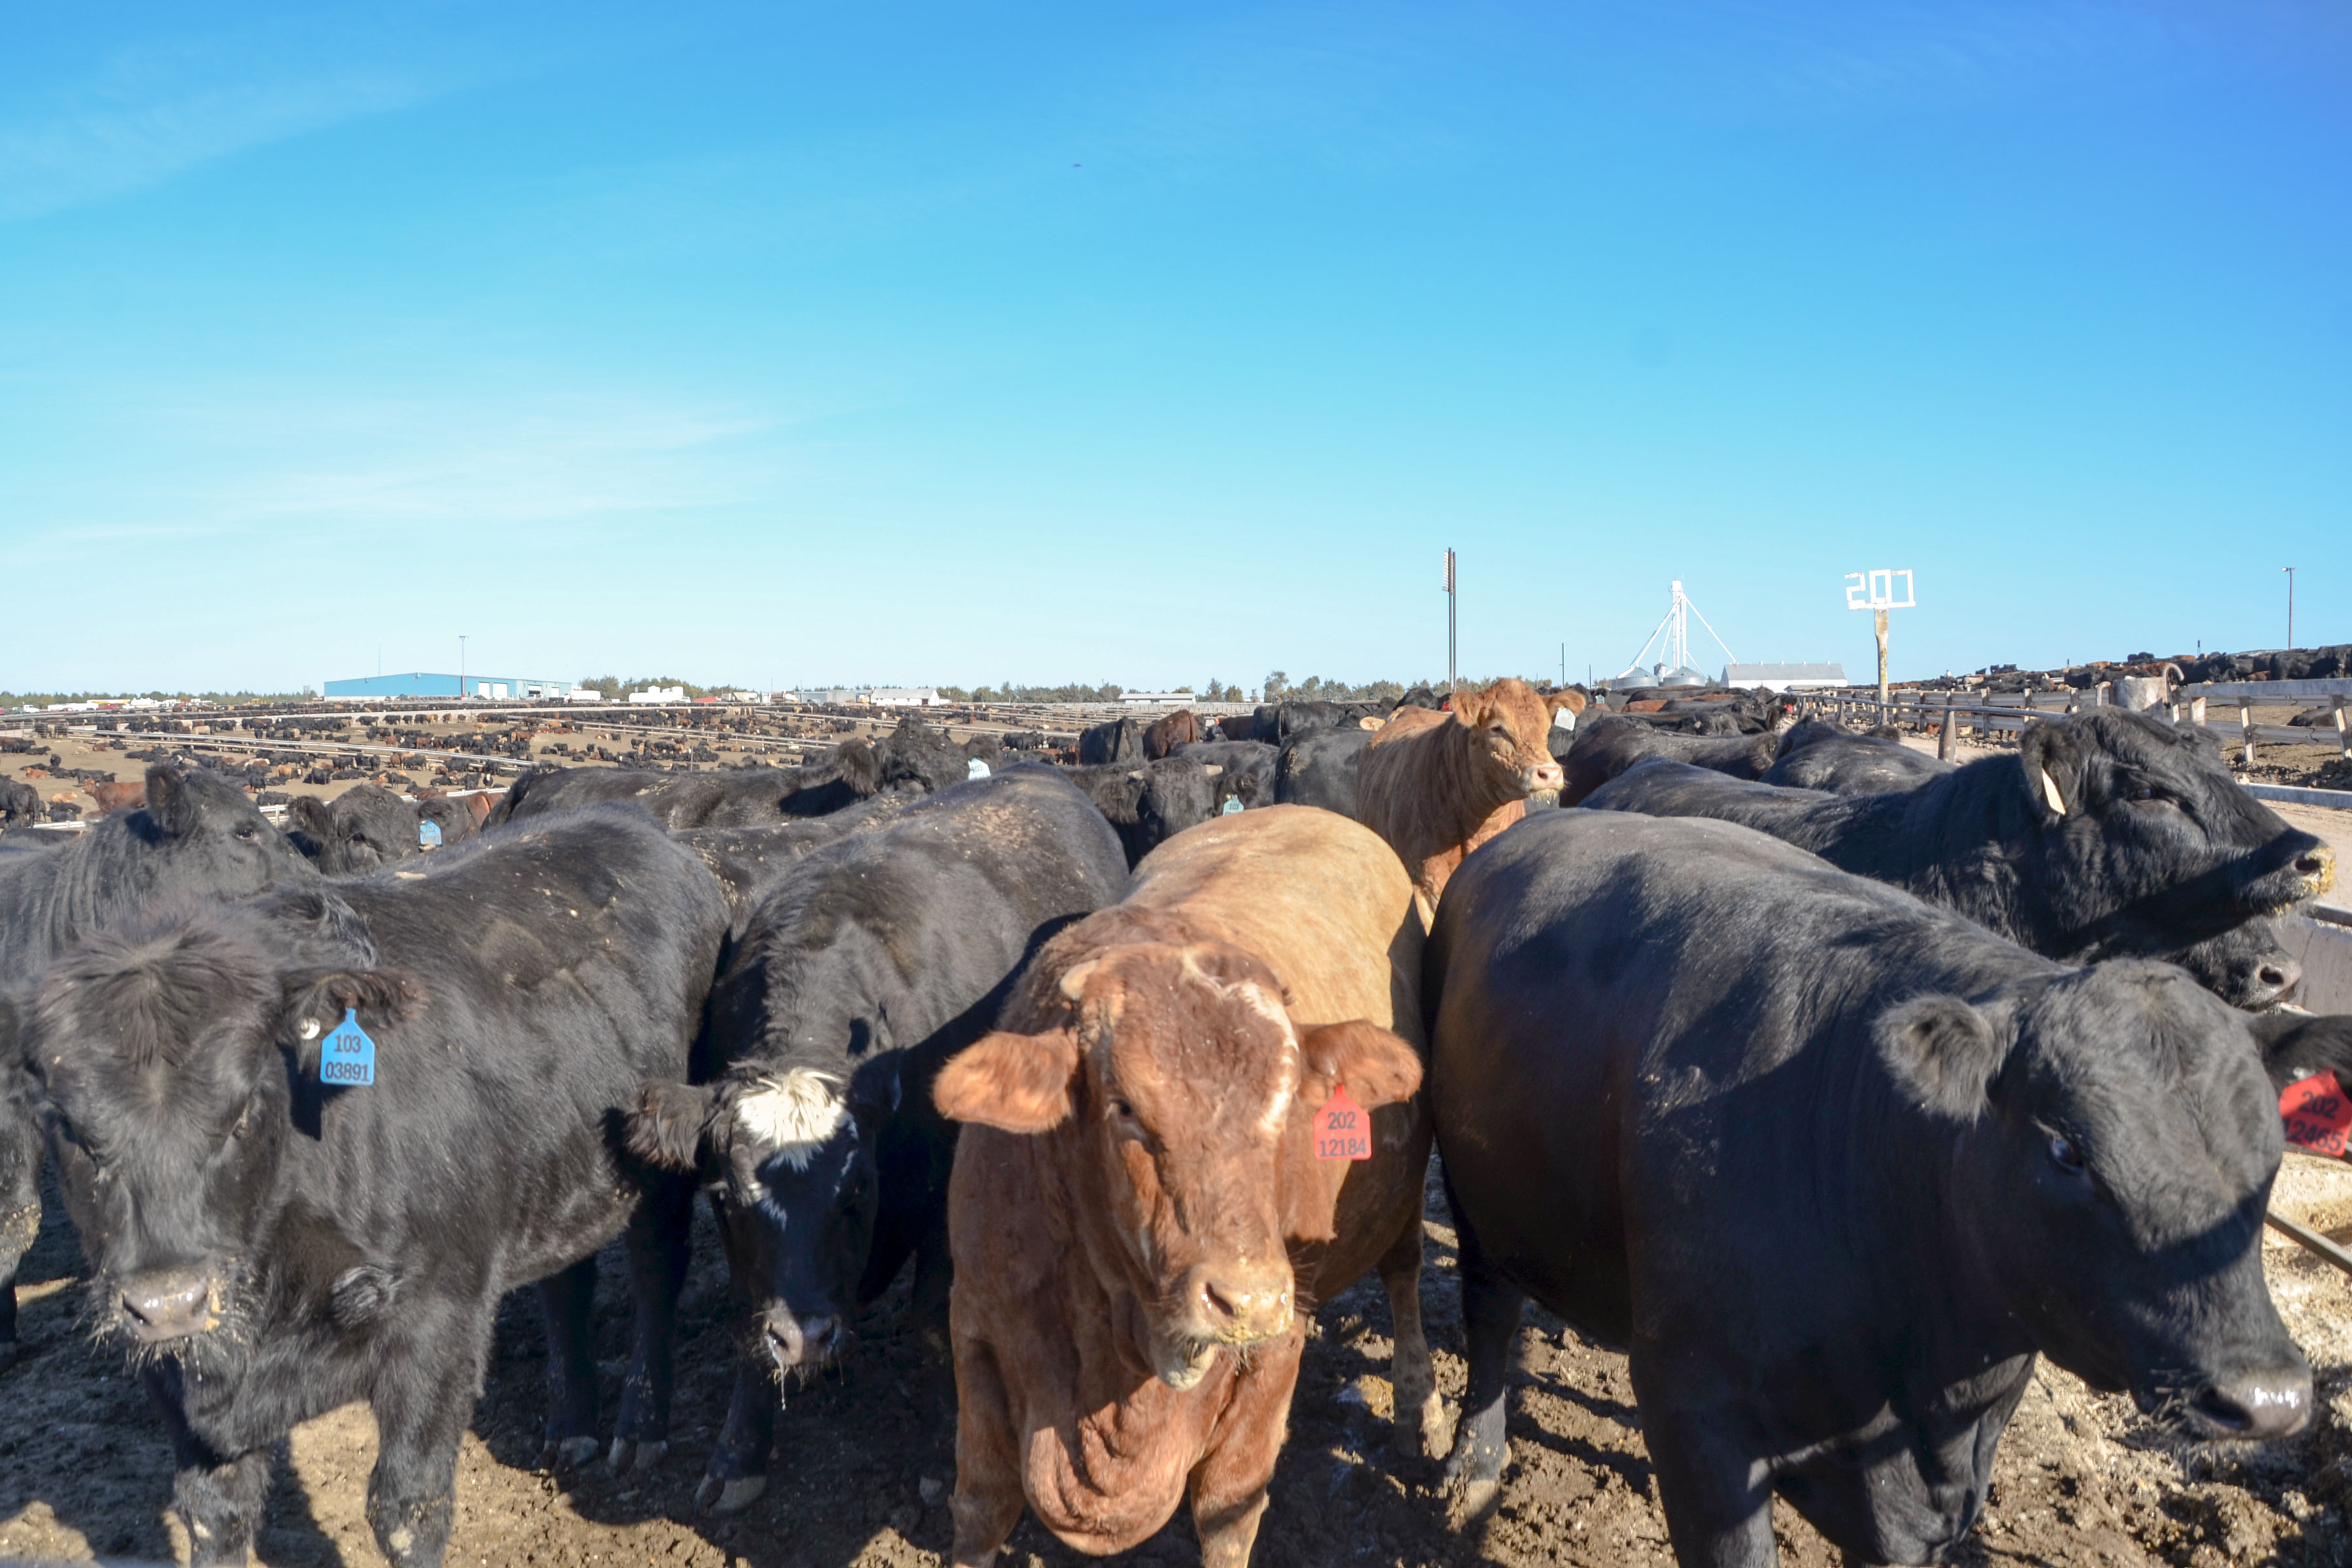 Photo: Feedlot Fish Kill 1 | Cattle At 5 Star Feedlot - SBrasch